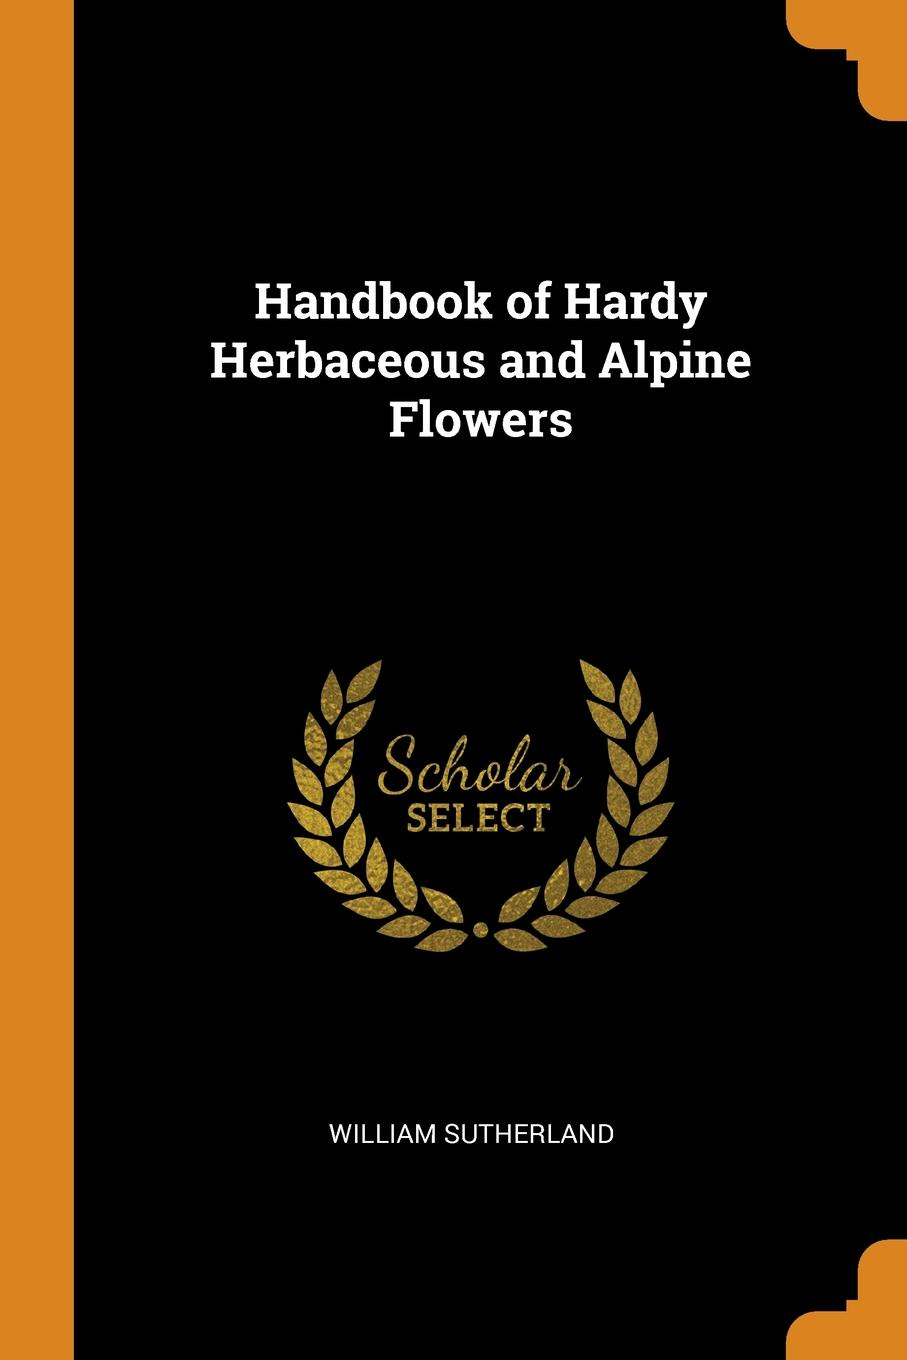 William Sutherland. Handbook of Hardy Herbaceous and Alpine Flowers